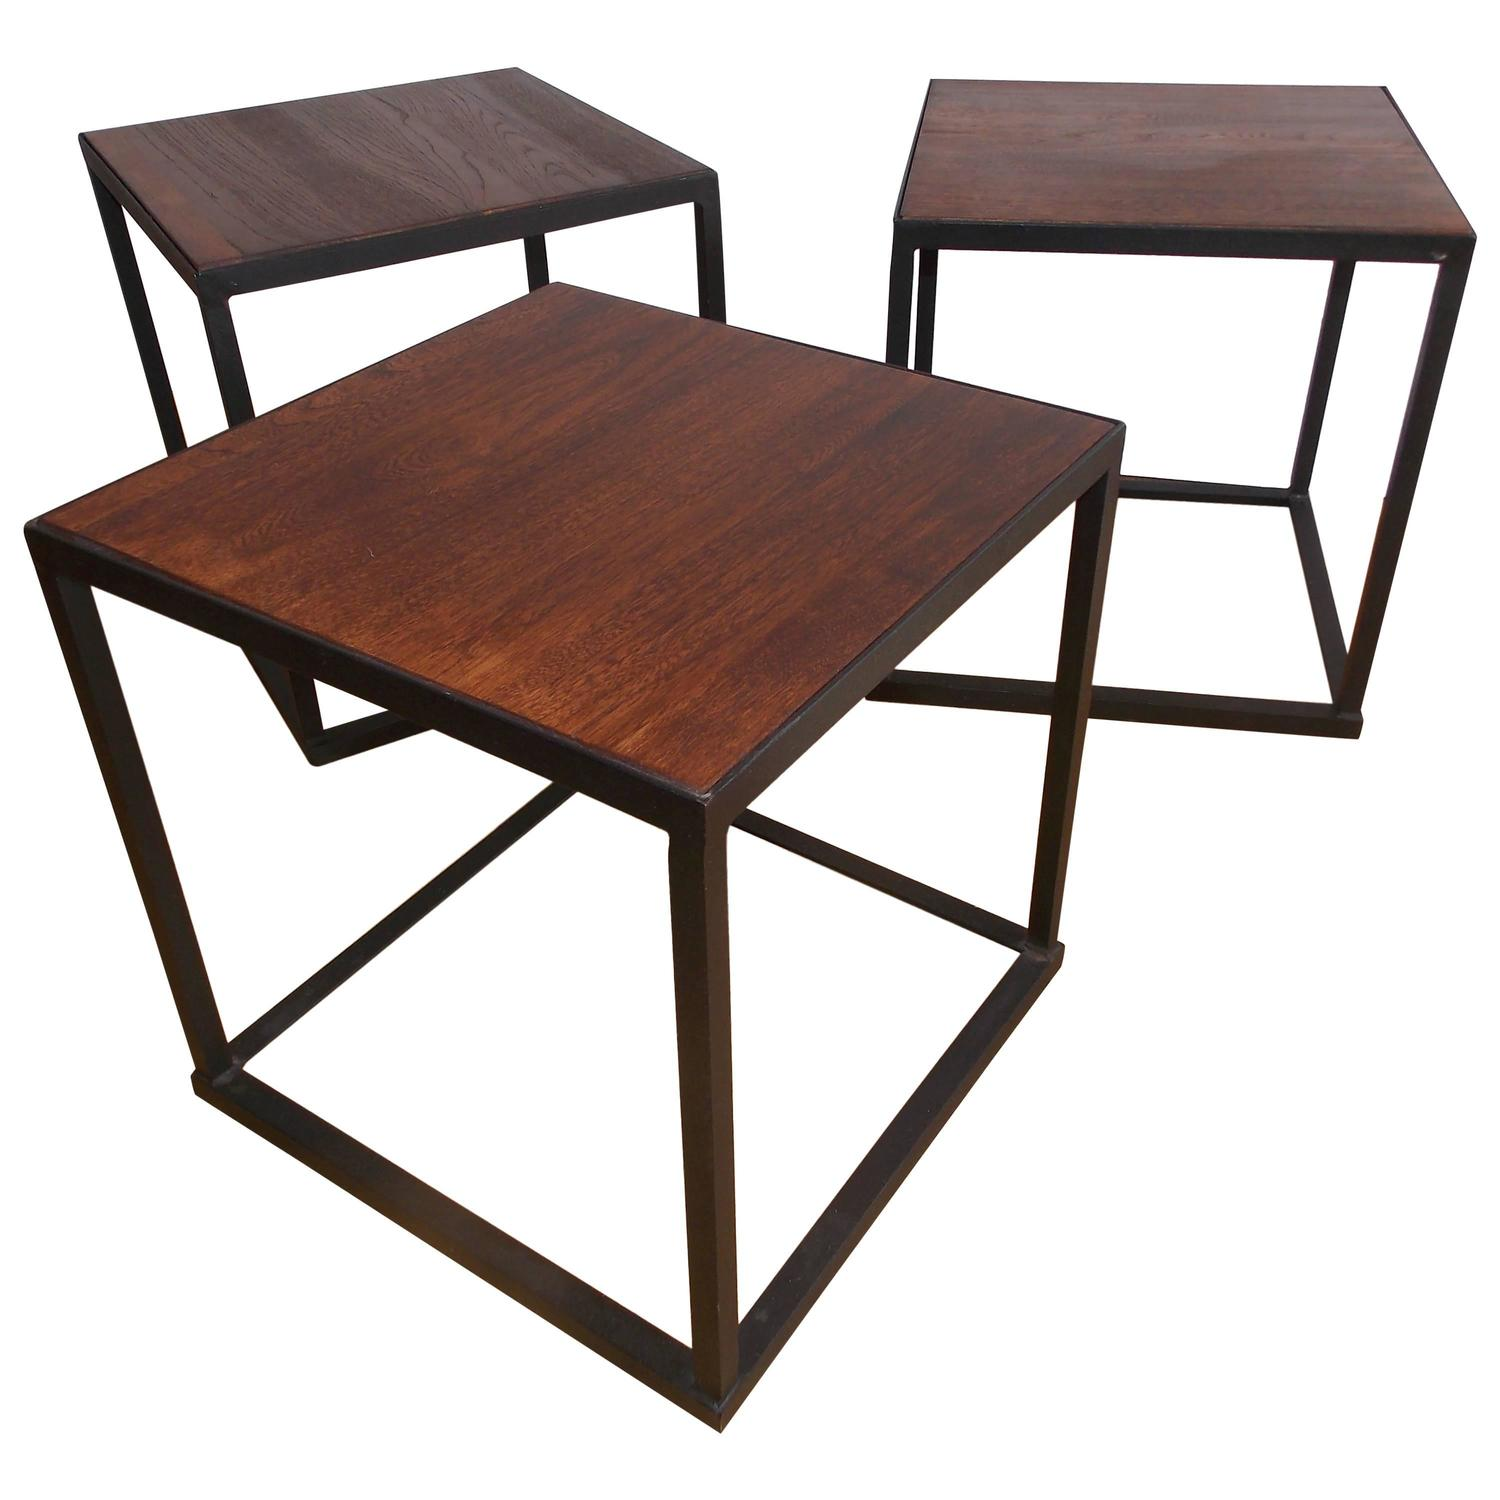 Hecho En Mexico Furniture Mexican Modern Rosewood and Iron Occasional Tables at 1stdibs